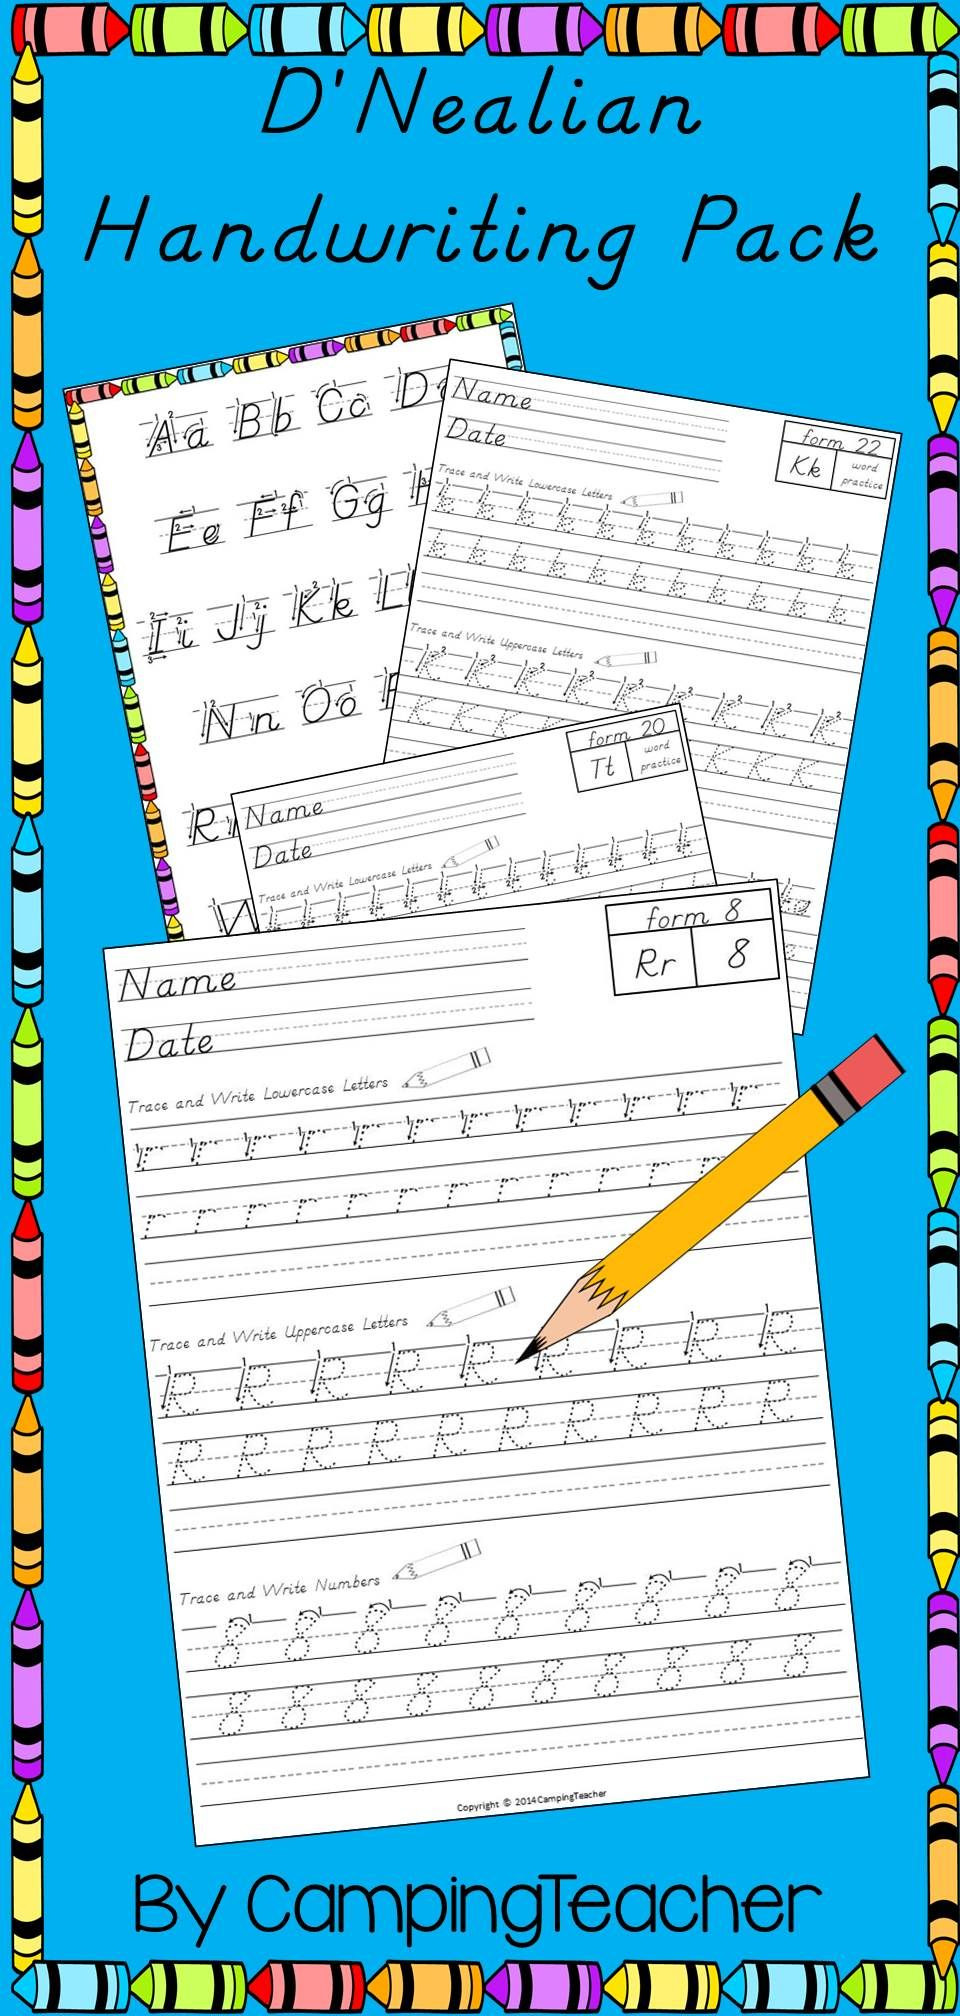 D Nealian Handwriting Worksheets D Nealian Writing Pack Handwriting Practice